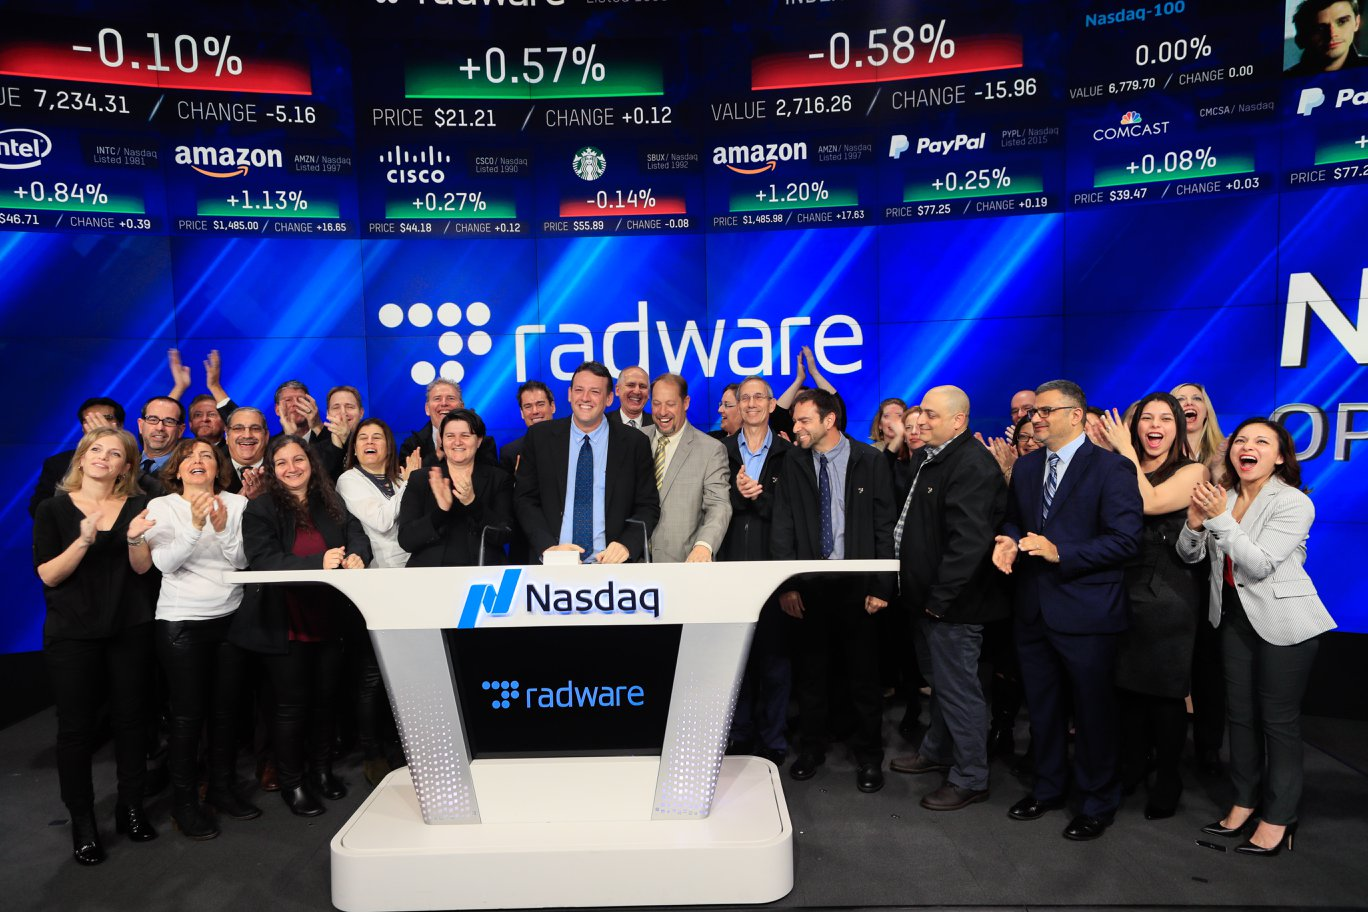 Radware at Nasdaq